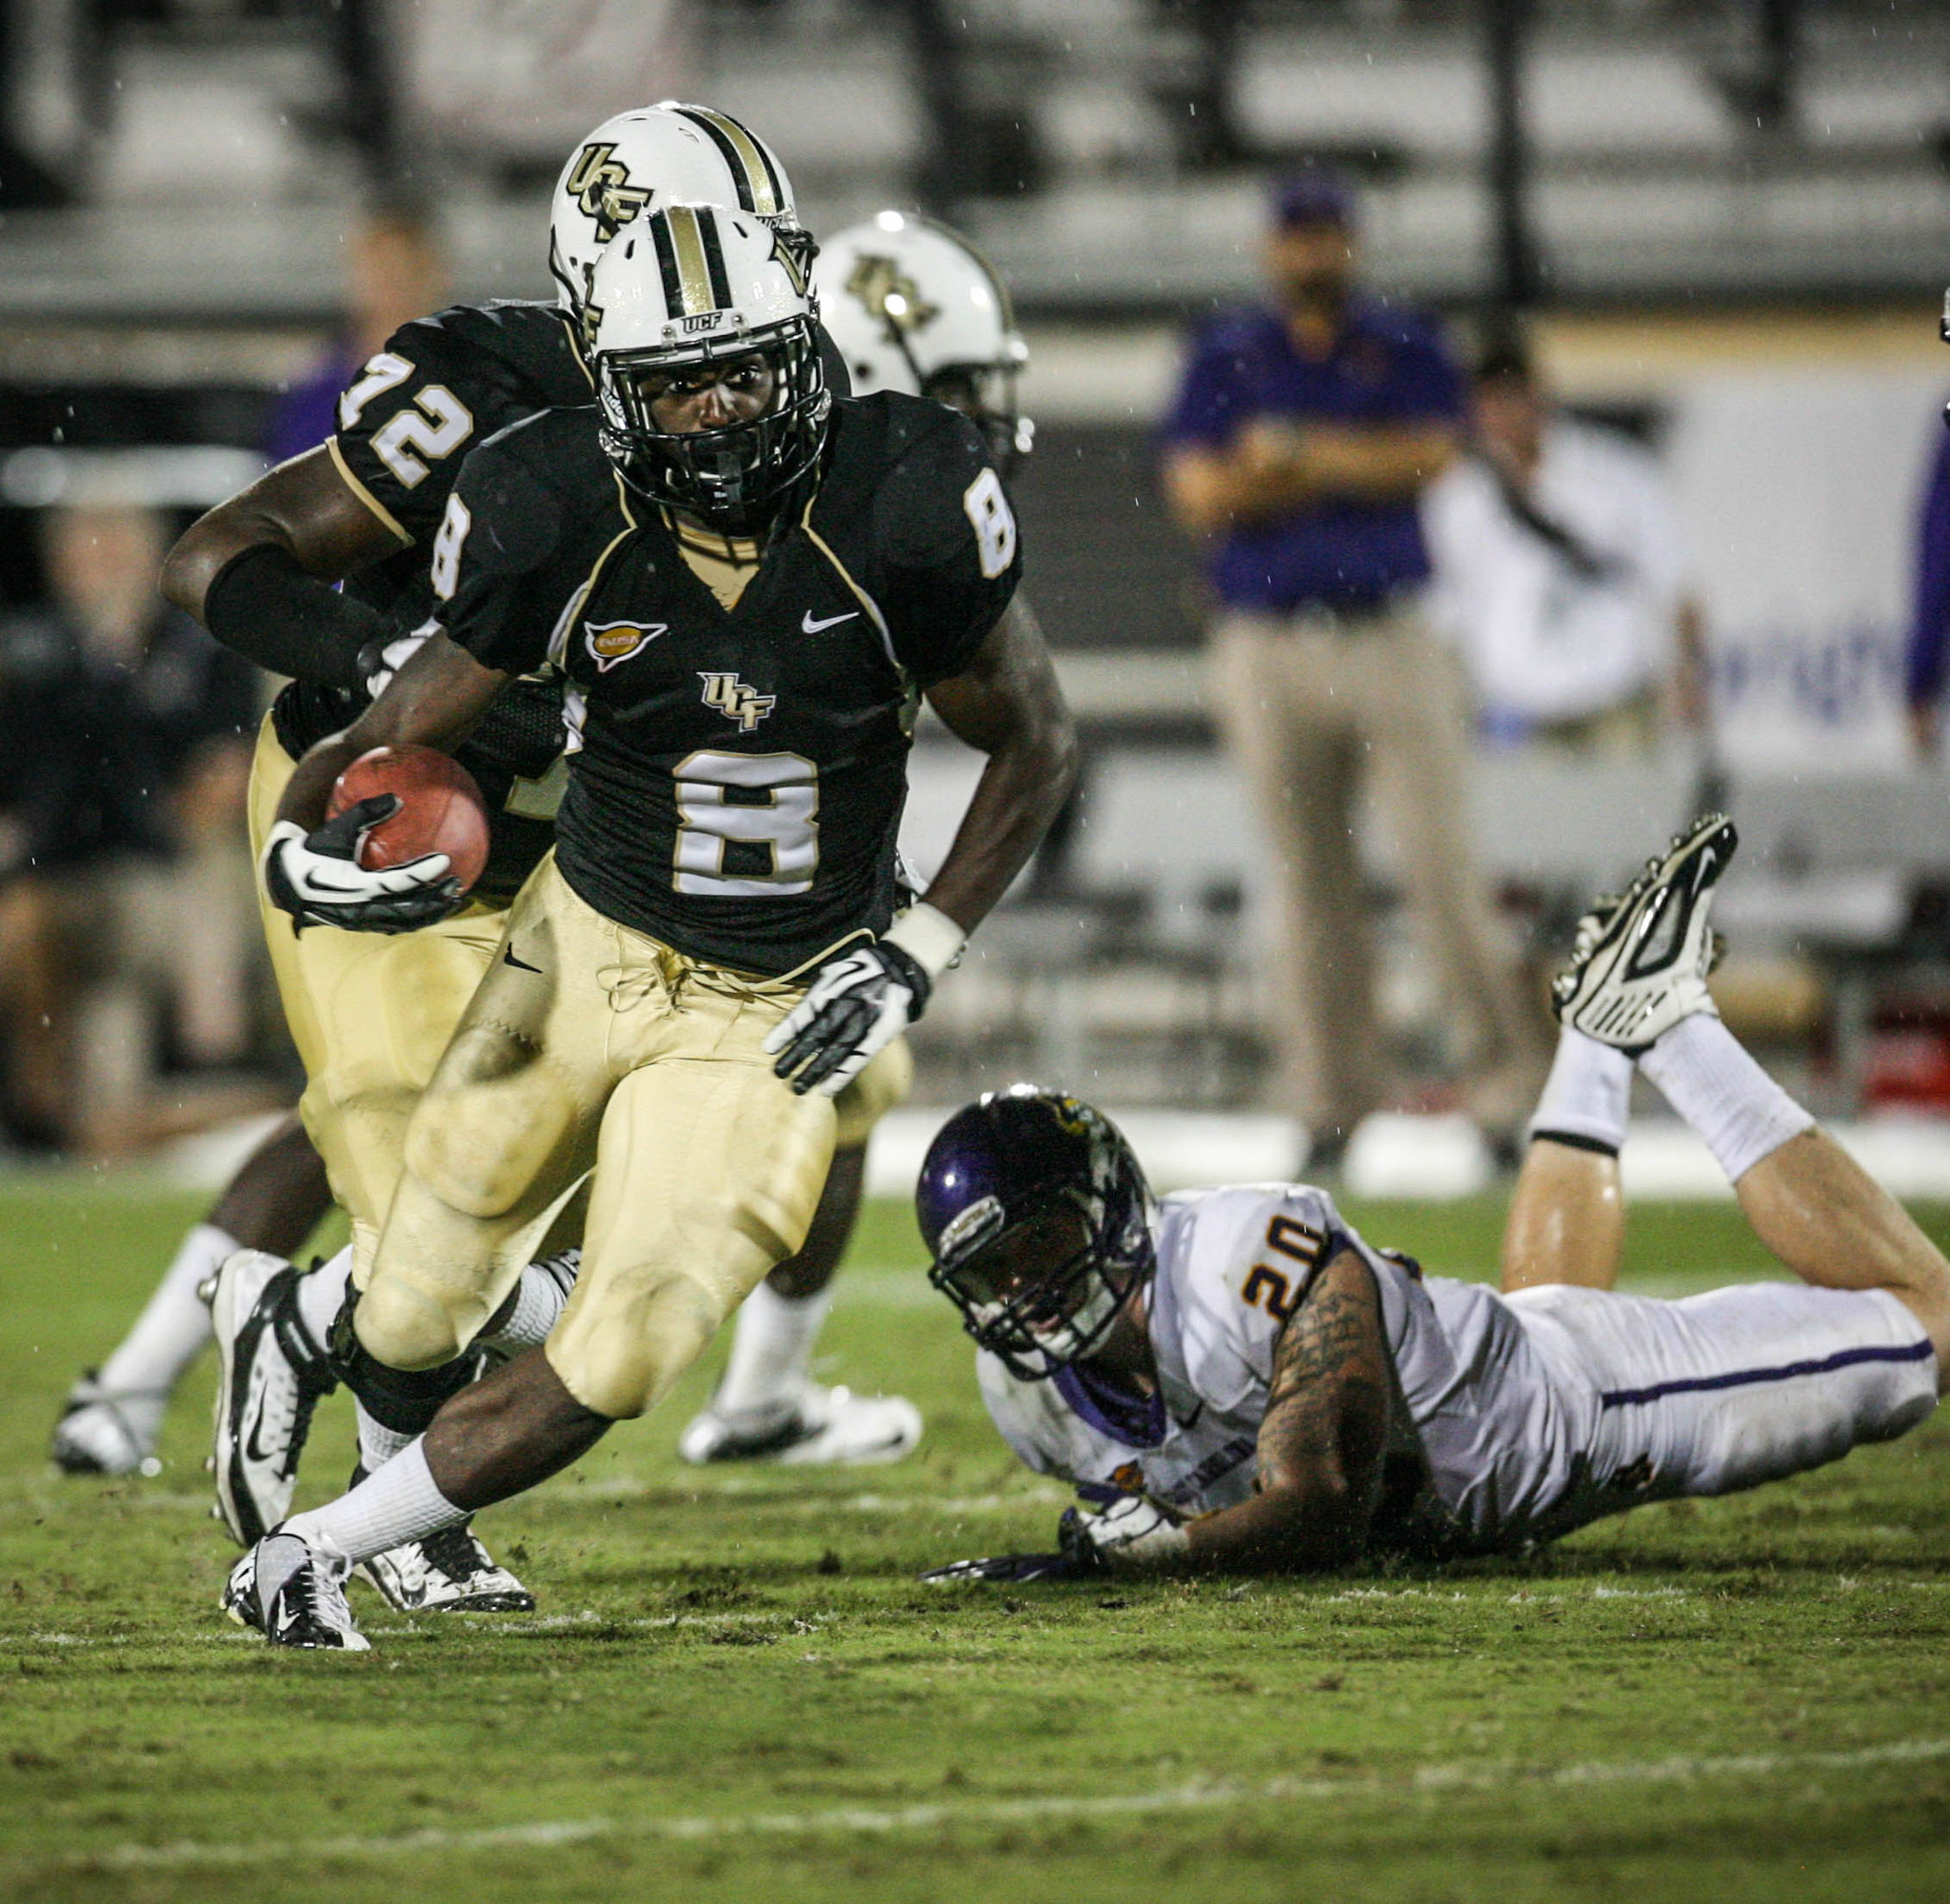 University of Central Florida running back Storm Johnson (8) slips past East Carolina's Kyle Tudor (20) during fourth quarter action of a C-USA football game against East Carolina at the Brighthouse Networks Stadium on Thursday, October 04, 2012 in Orlando, FL.